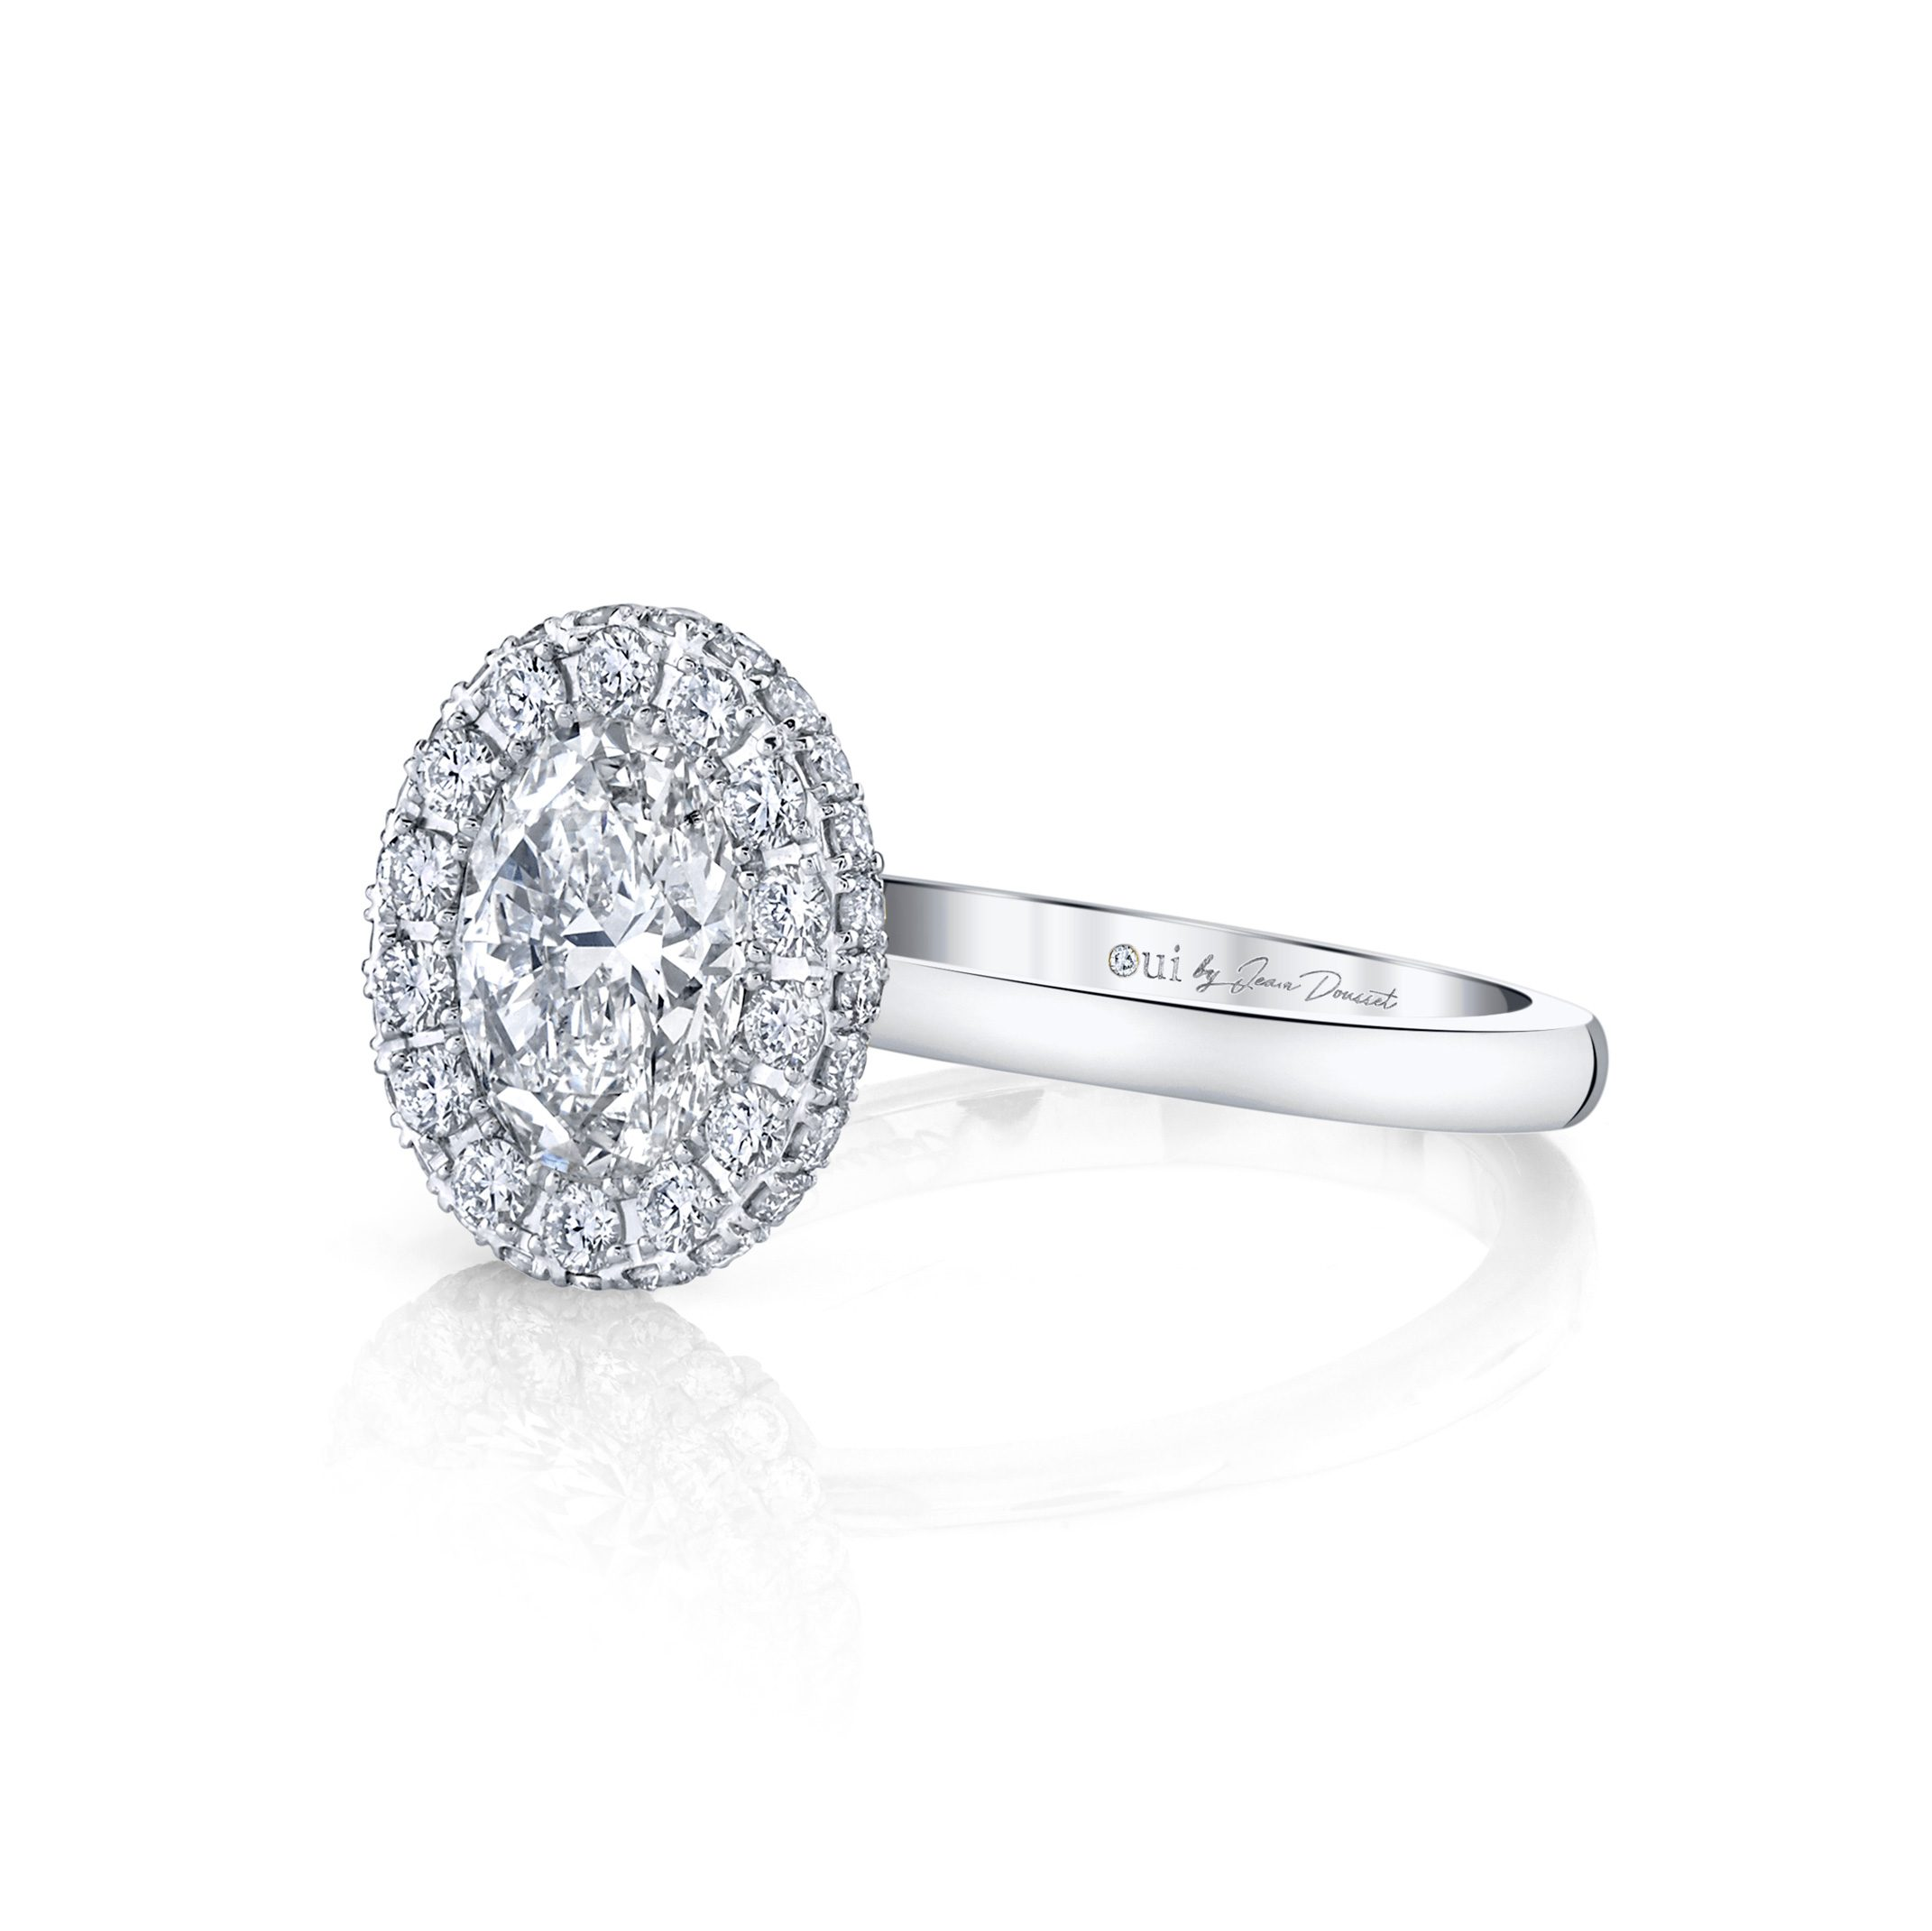 Colette Oval Seamless Halo® Engagement Ring with a solid band in 18k White Gold by Oui Side View by Jean Dousset